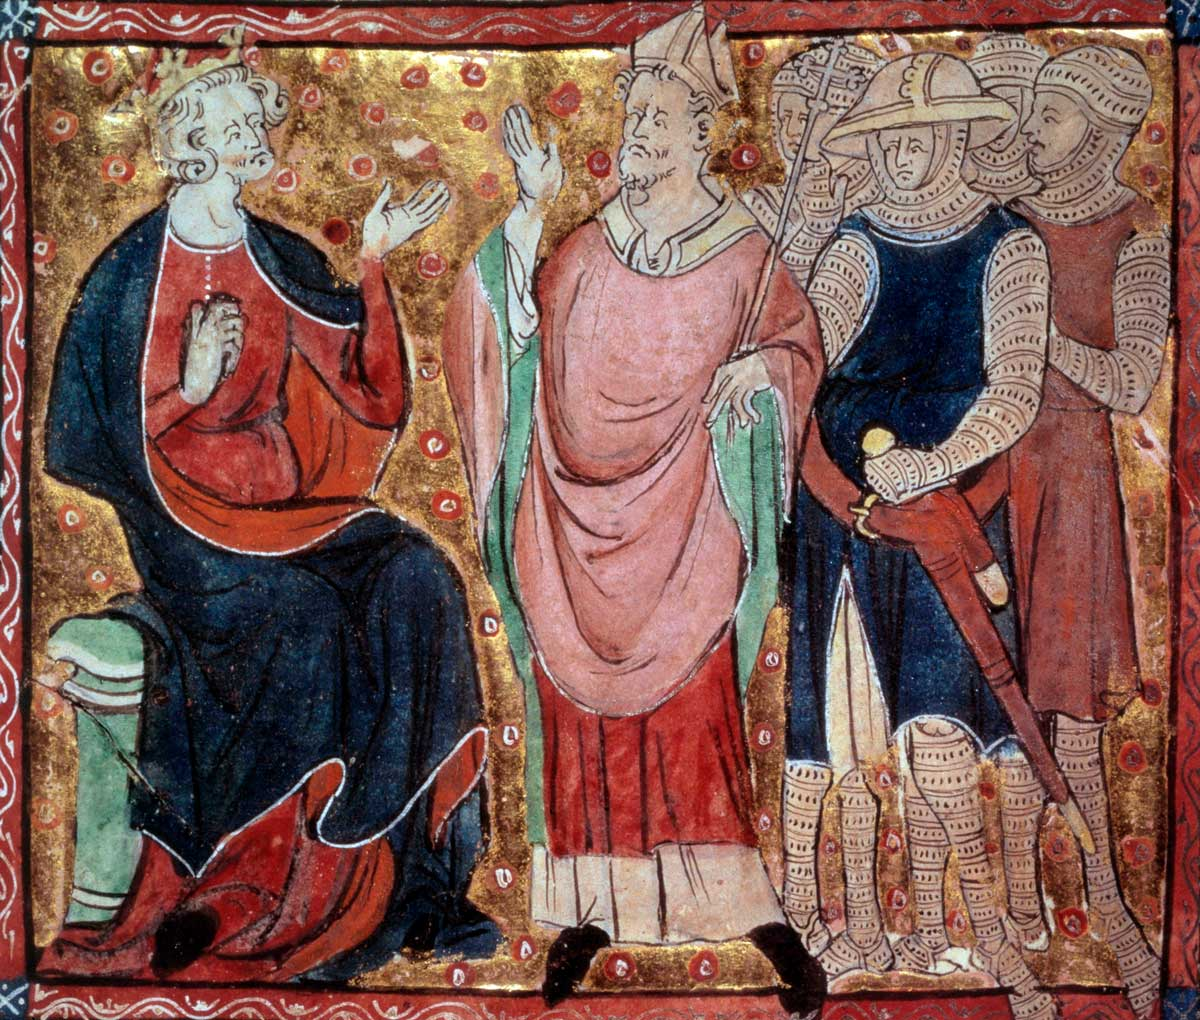 Henry II receiving a bishop and soldiers, from a French manuscript, 15th century © Bridgeman Images.